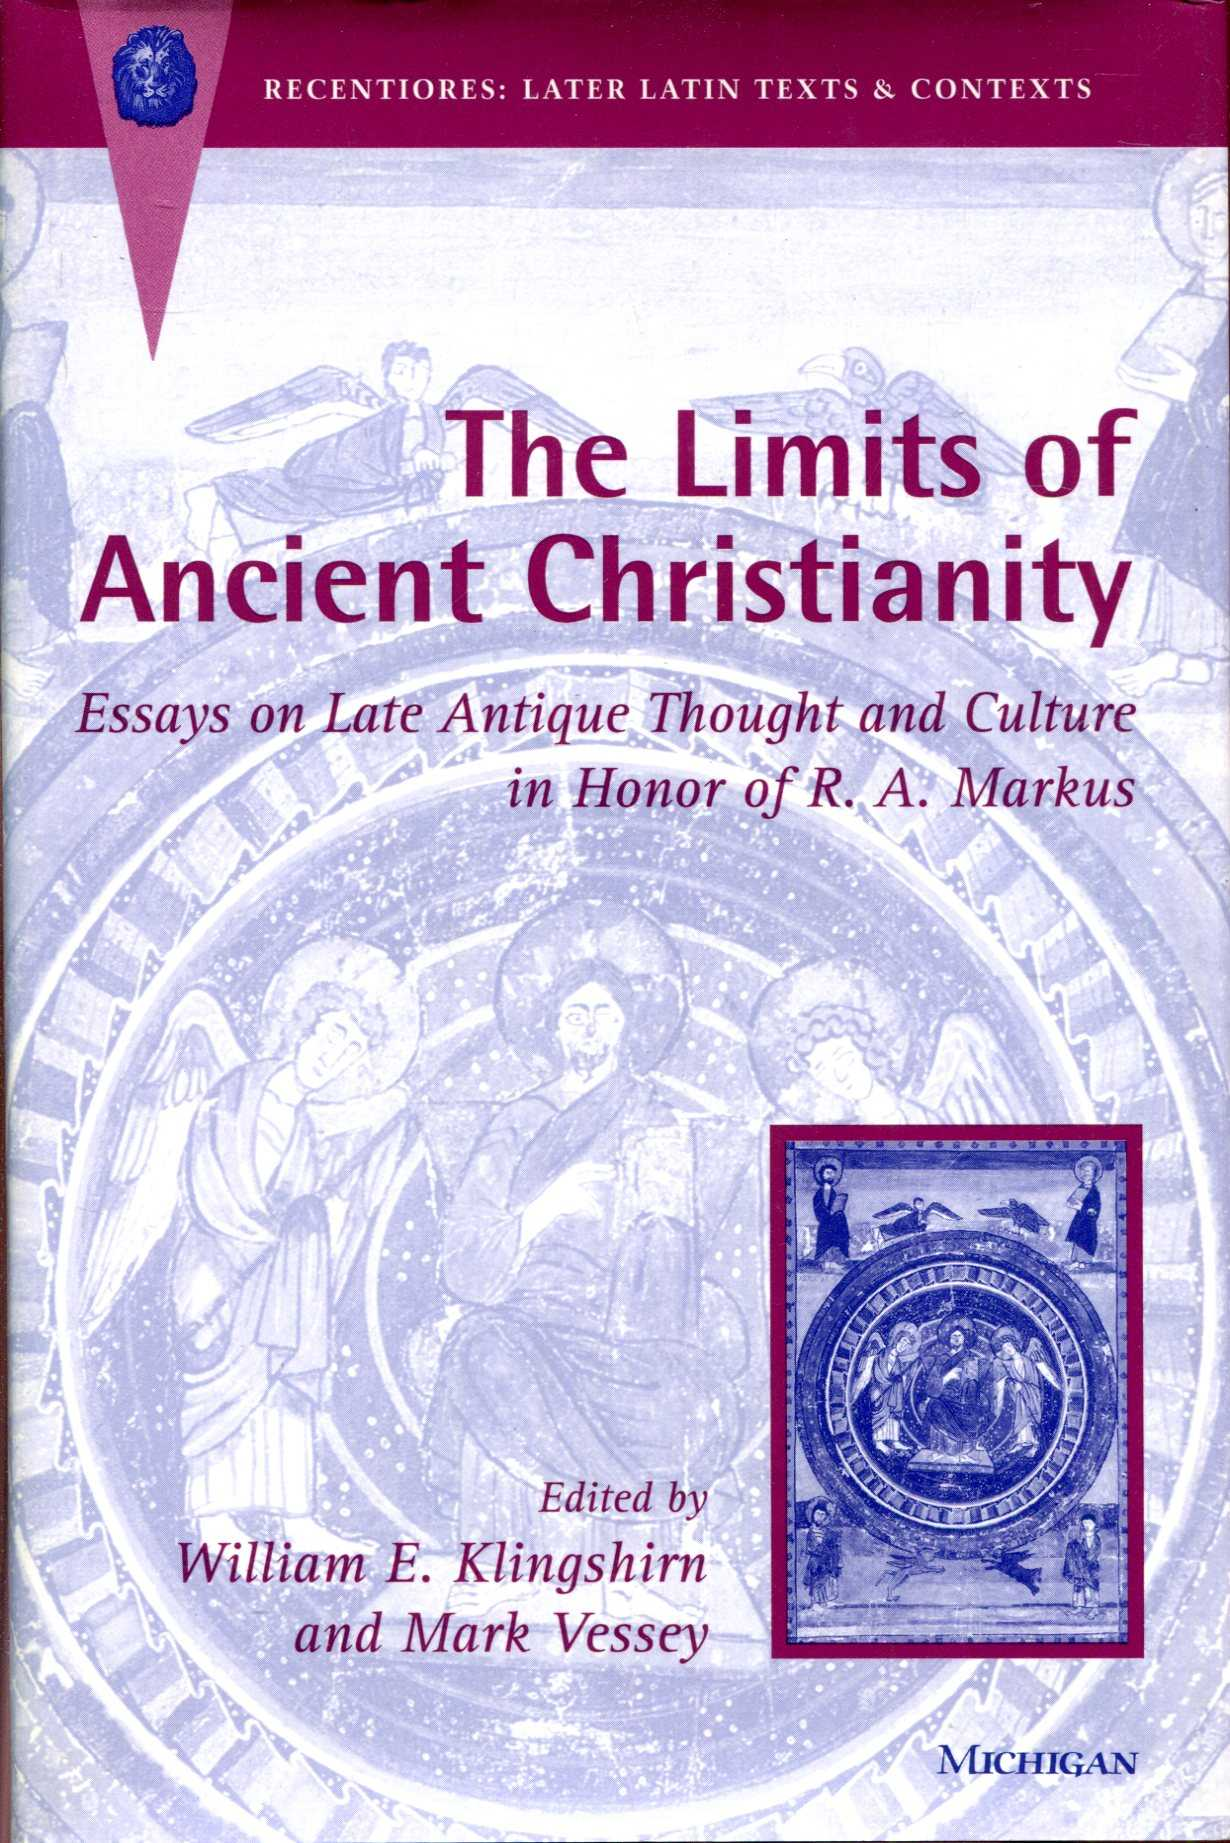 Image for The Limits of Ancient Christianity: Essays on Late Antique Thought and Culture in Honor of R. A. Markus